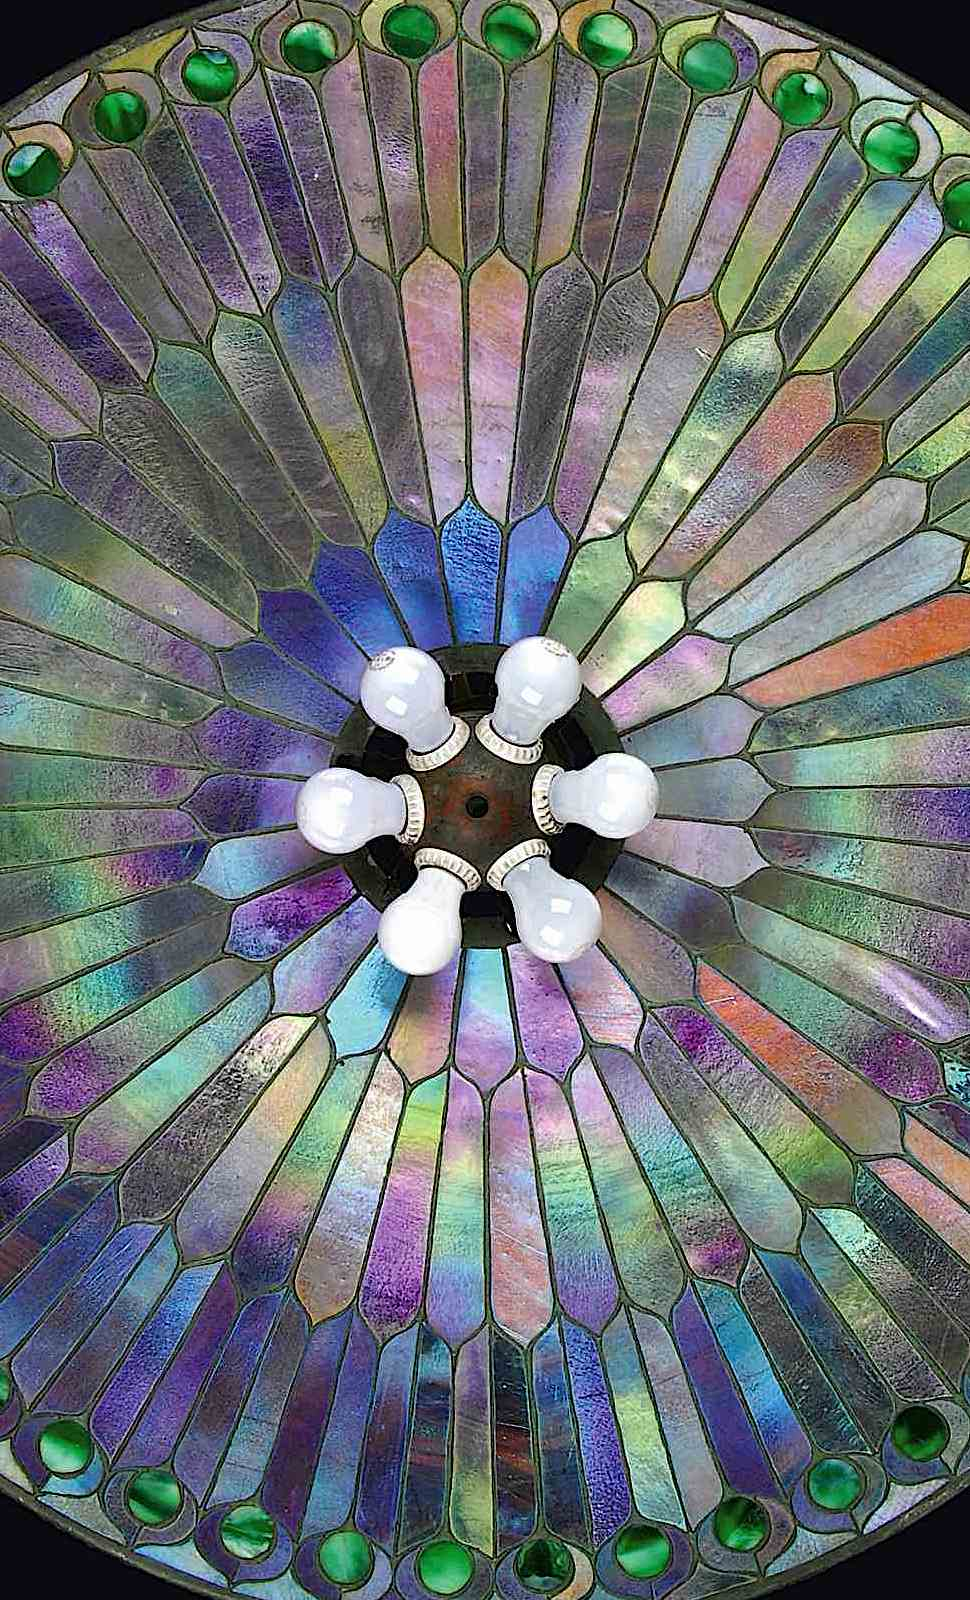 a giant Tiffany ceiling lamp 1920s? in a raiating design with rainbow colors